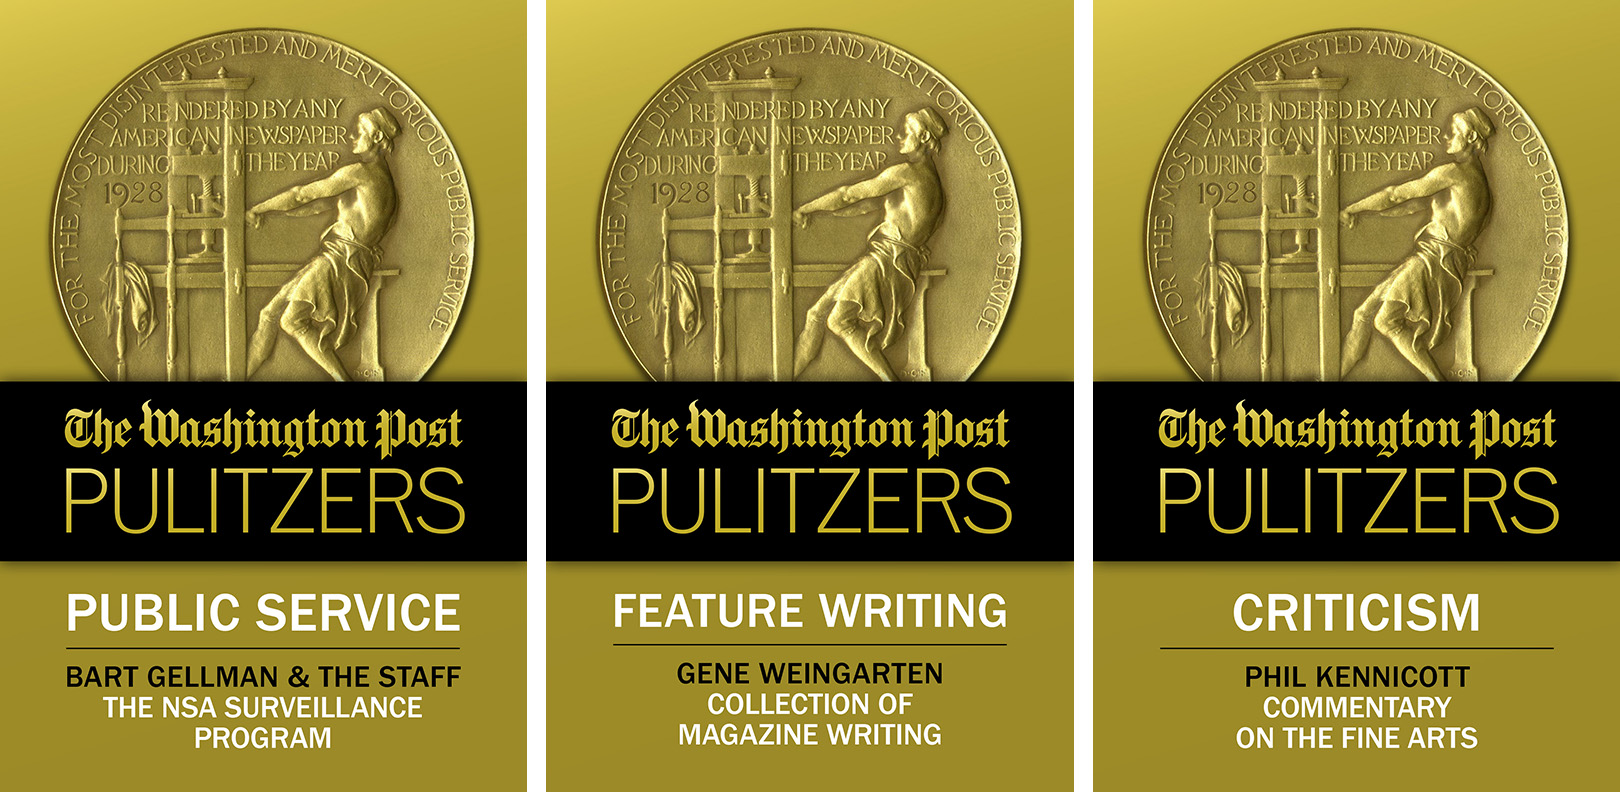 TWP epub cover-Pulitzer Series_combined-1.jpg